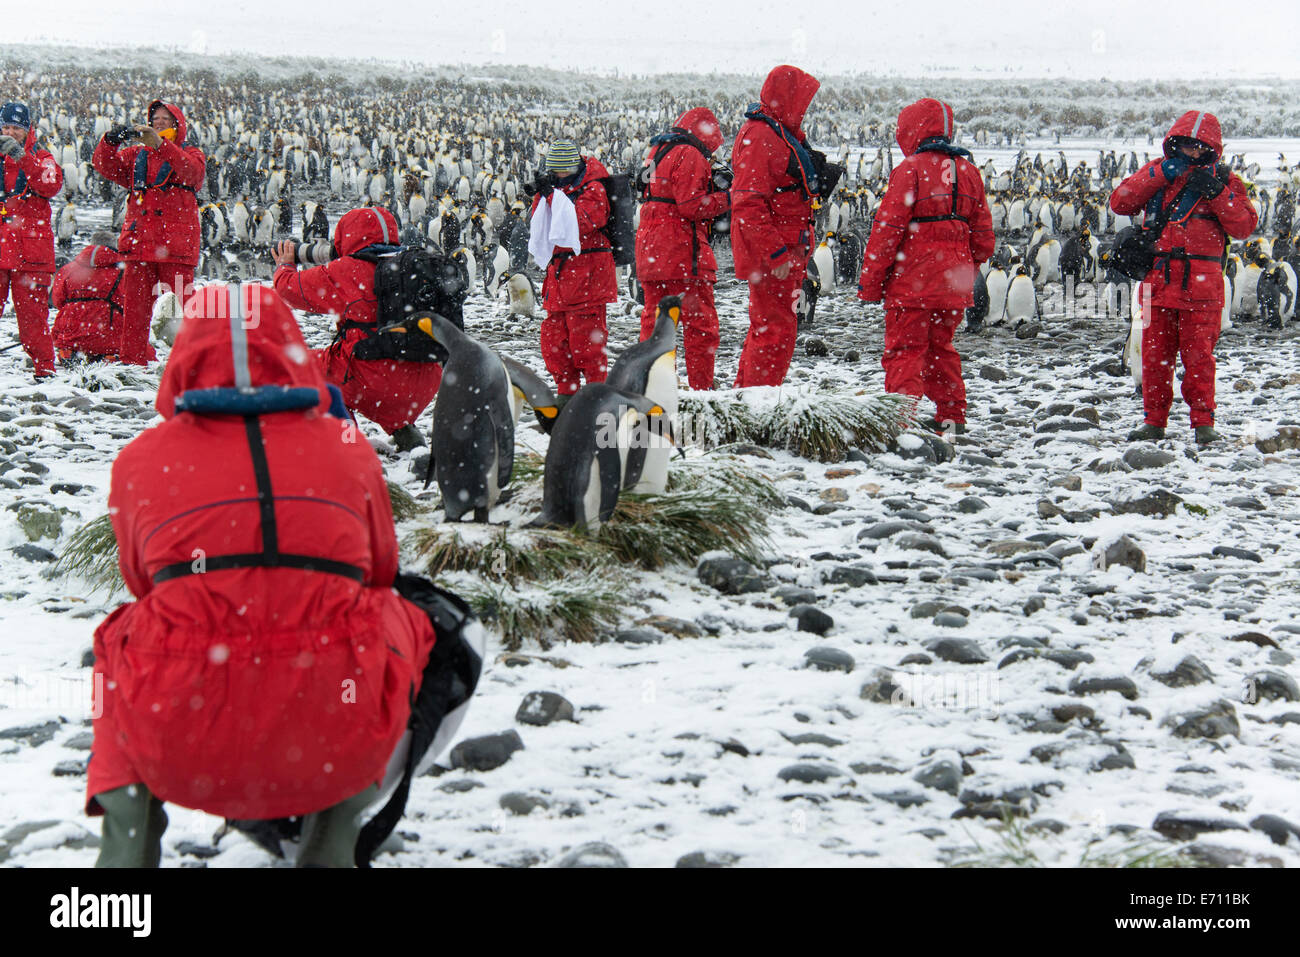 Travellers in bright orange waterproofs observing and photographing king penguins. - Stock Image